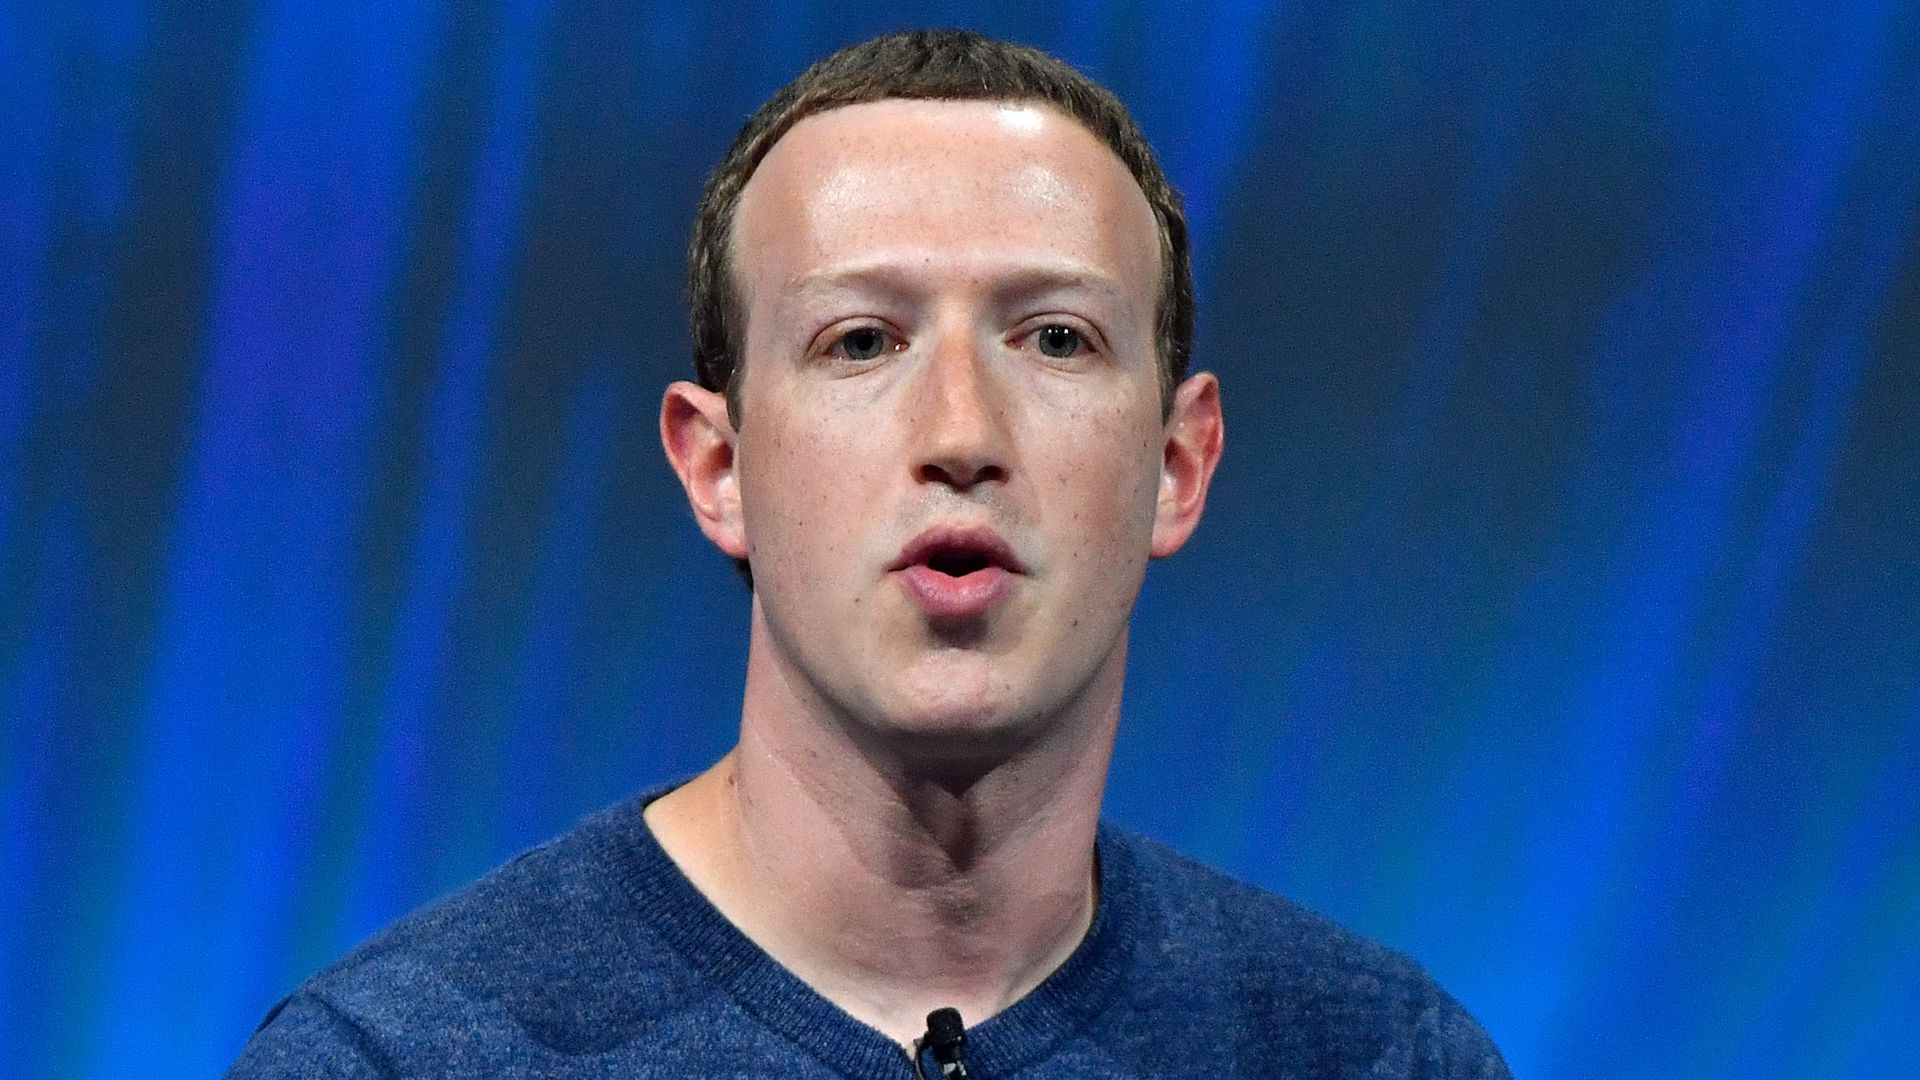 Mark Zuckerberg looks confused while speaking